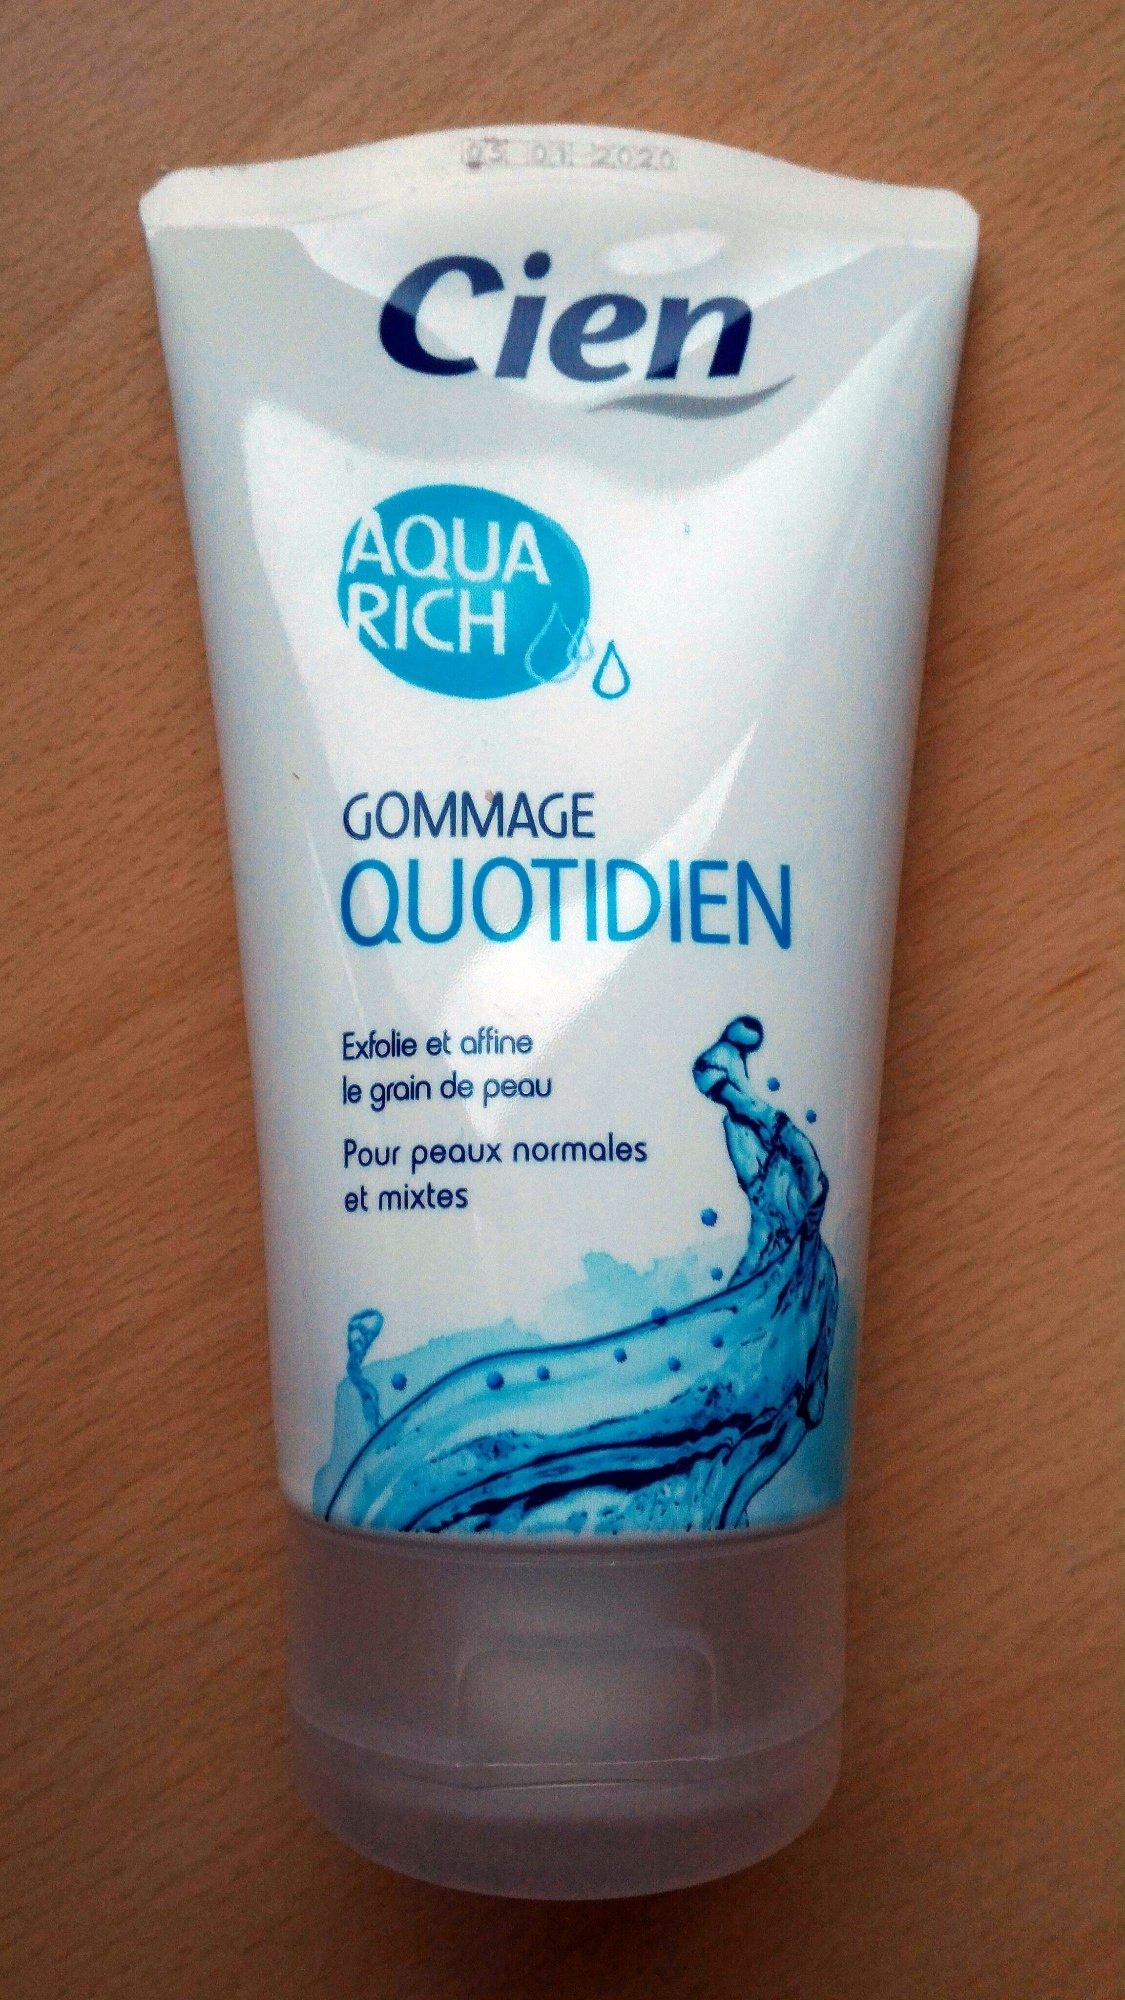 Gommage Quotidien Aqua Rich - Product